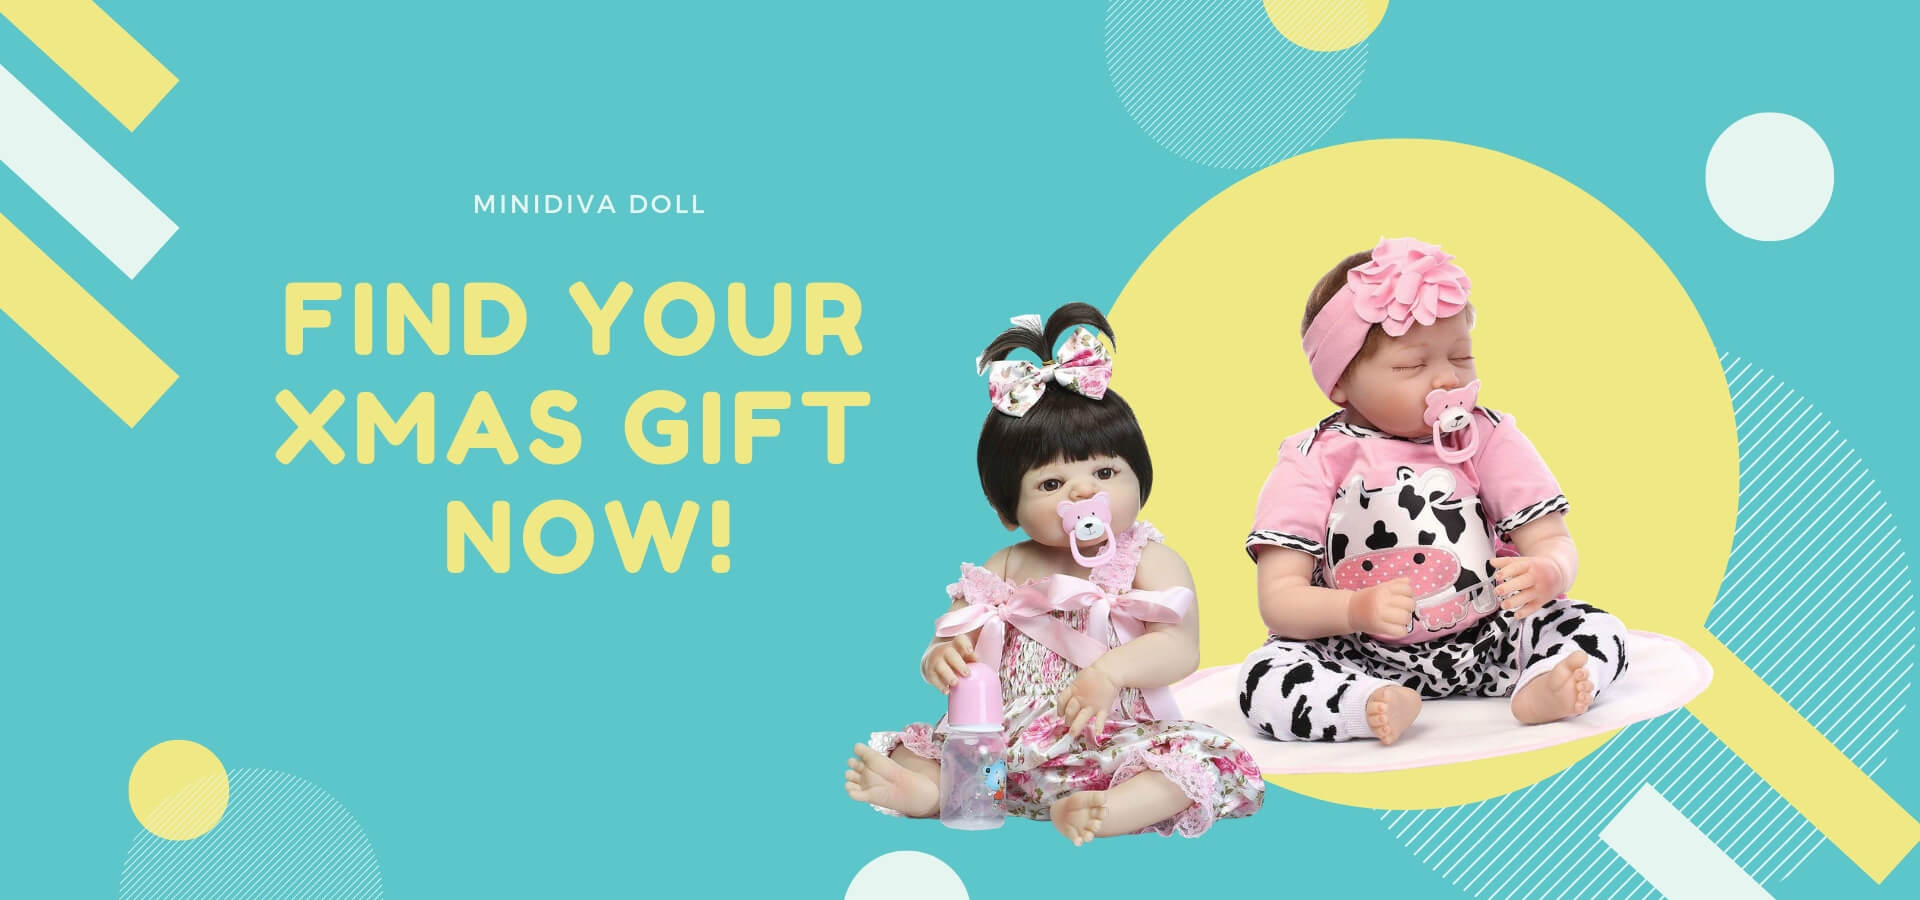 MiniDiva Girl Dolls